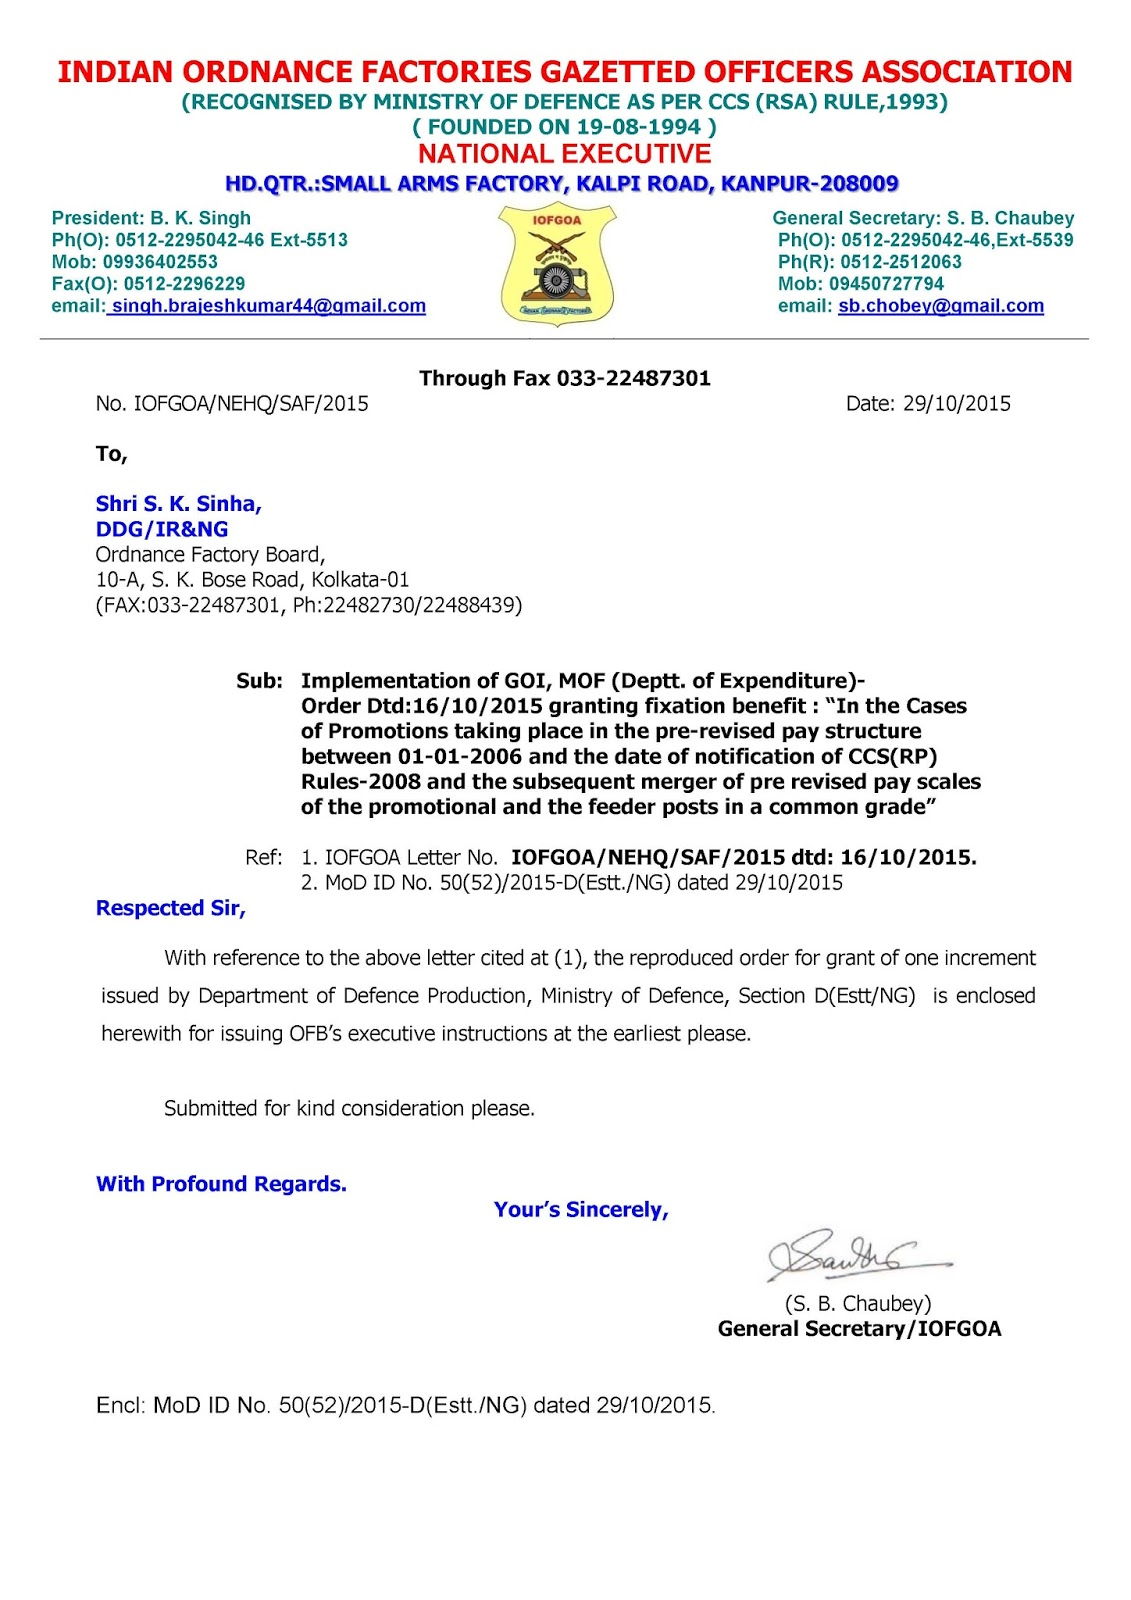 Iofgoa indian ordnance factories gazzetted officers association department of defence production ministry of defence section desttng letter to ofb for mof one increment order altavistaventures Images